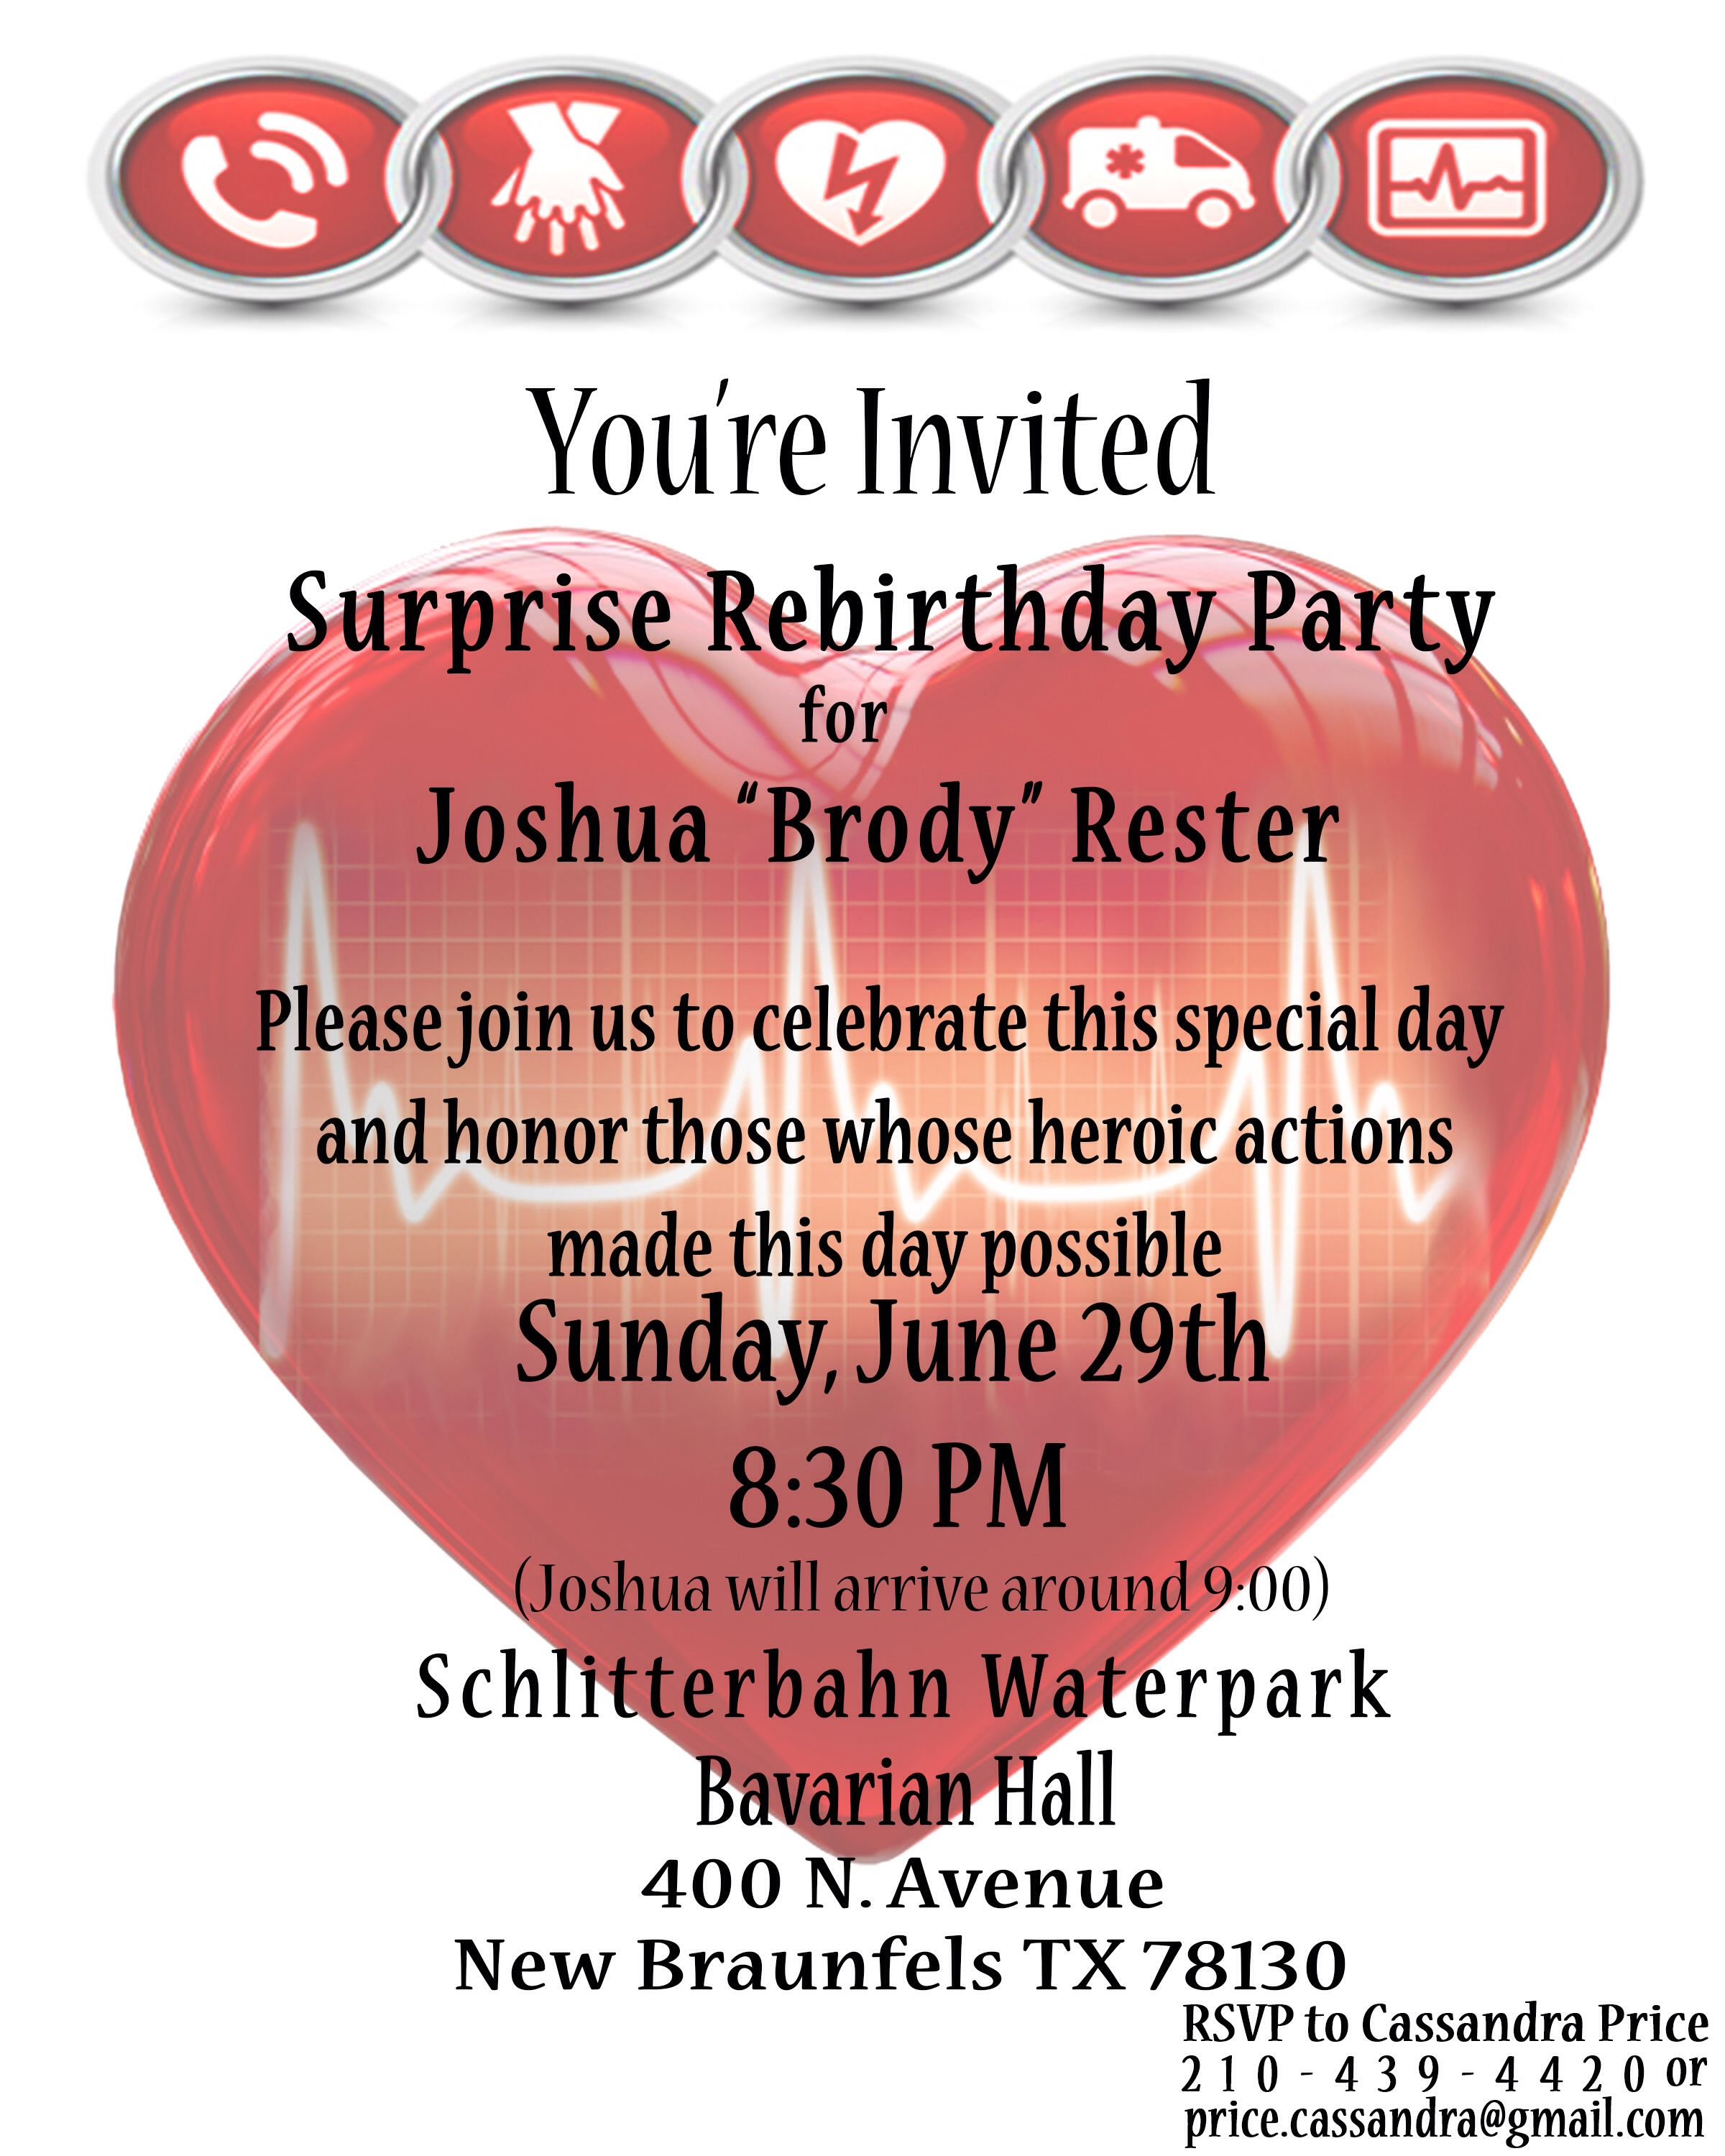 Survivor re-birthday party invitation | Survivor Re-birthday ...